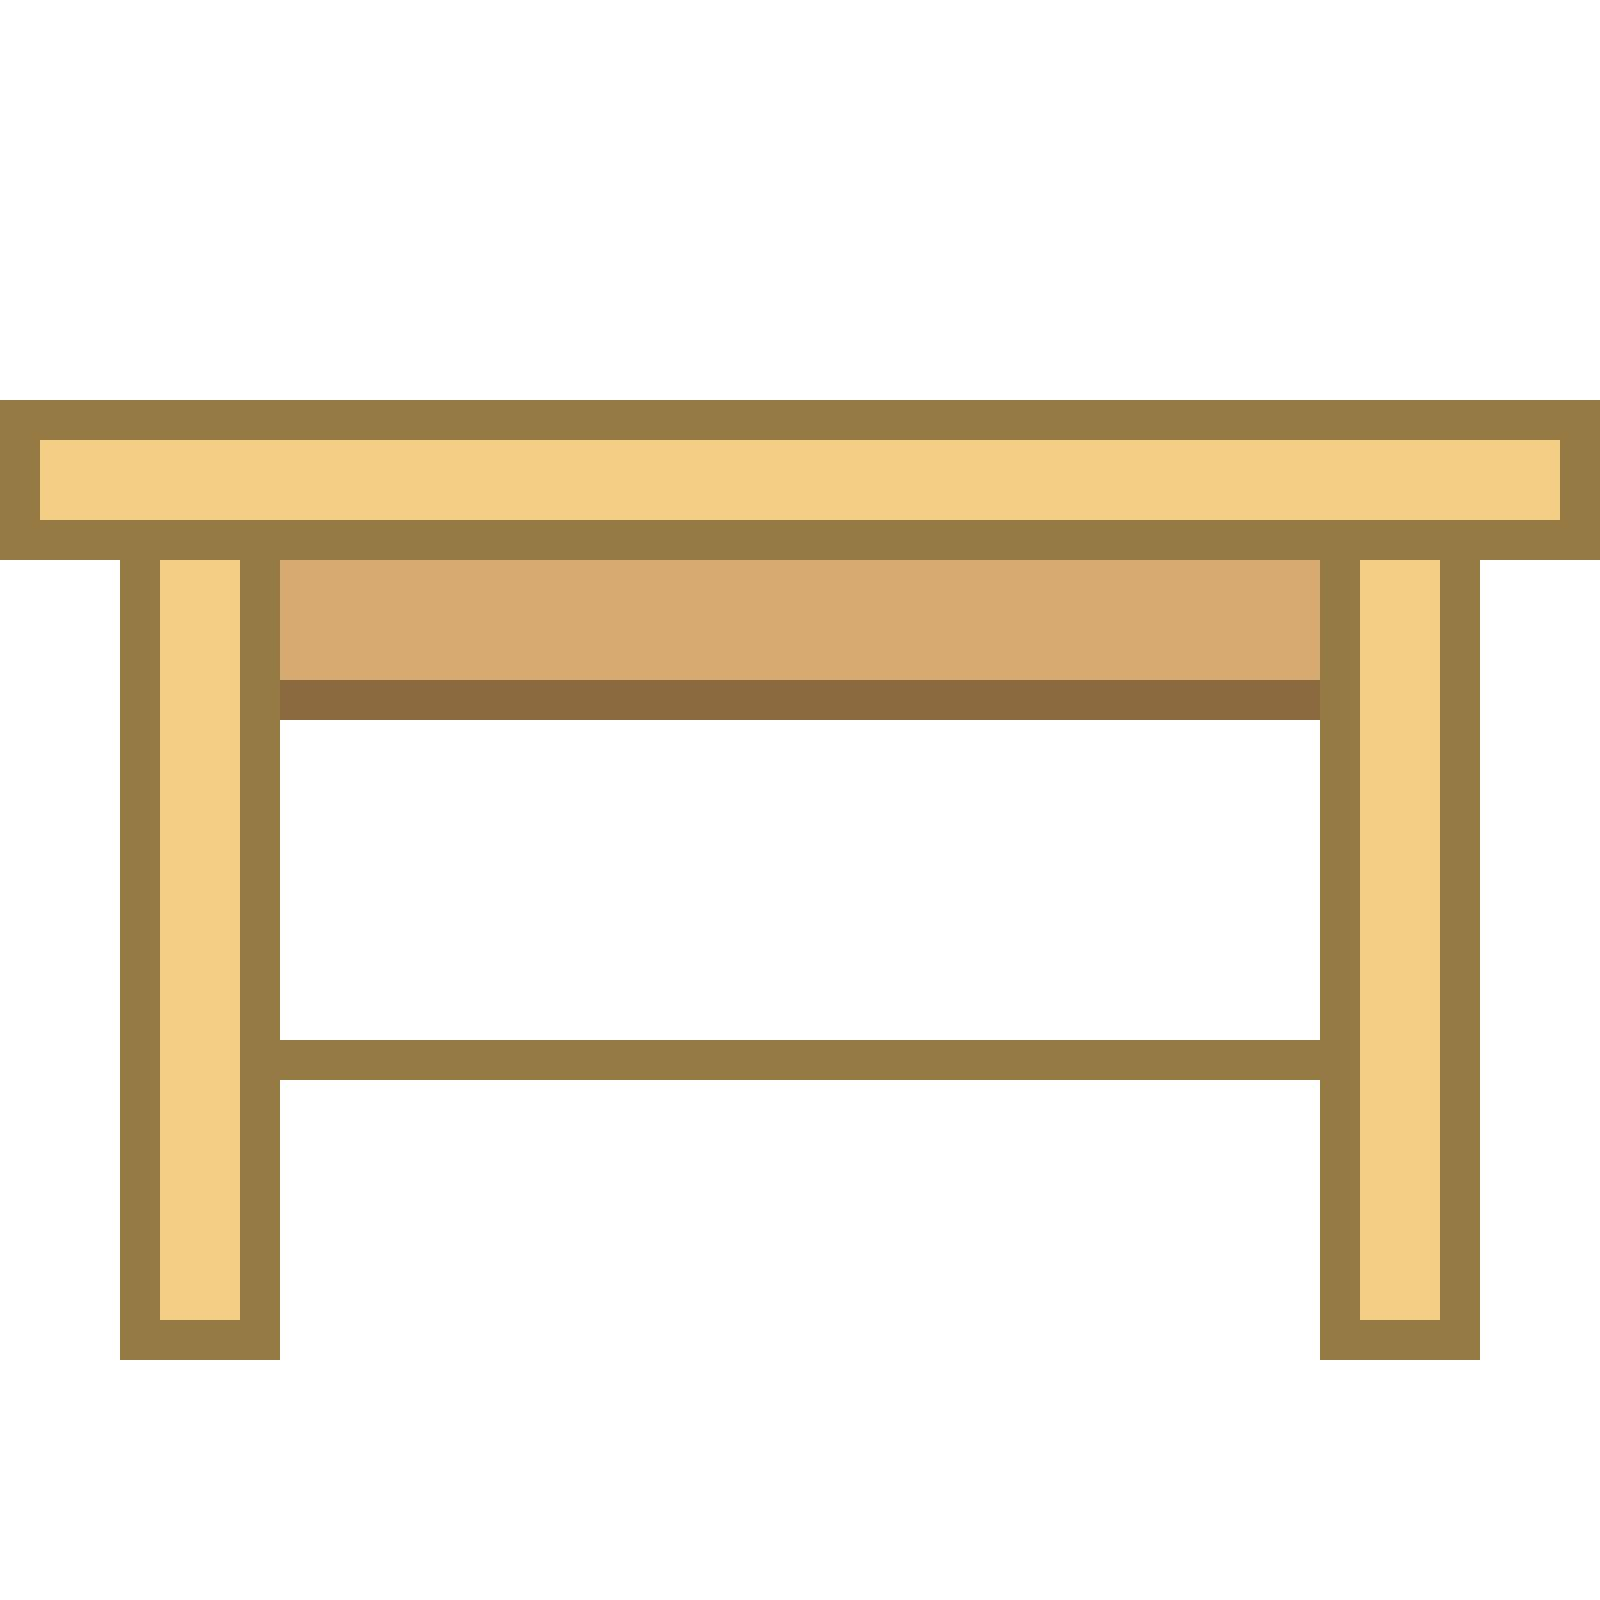 Table Icon Icons8